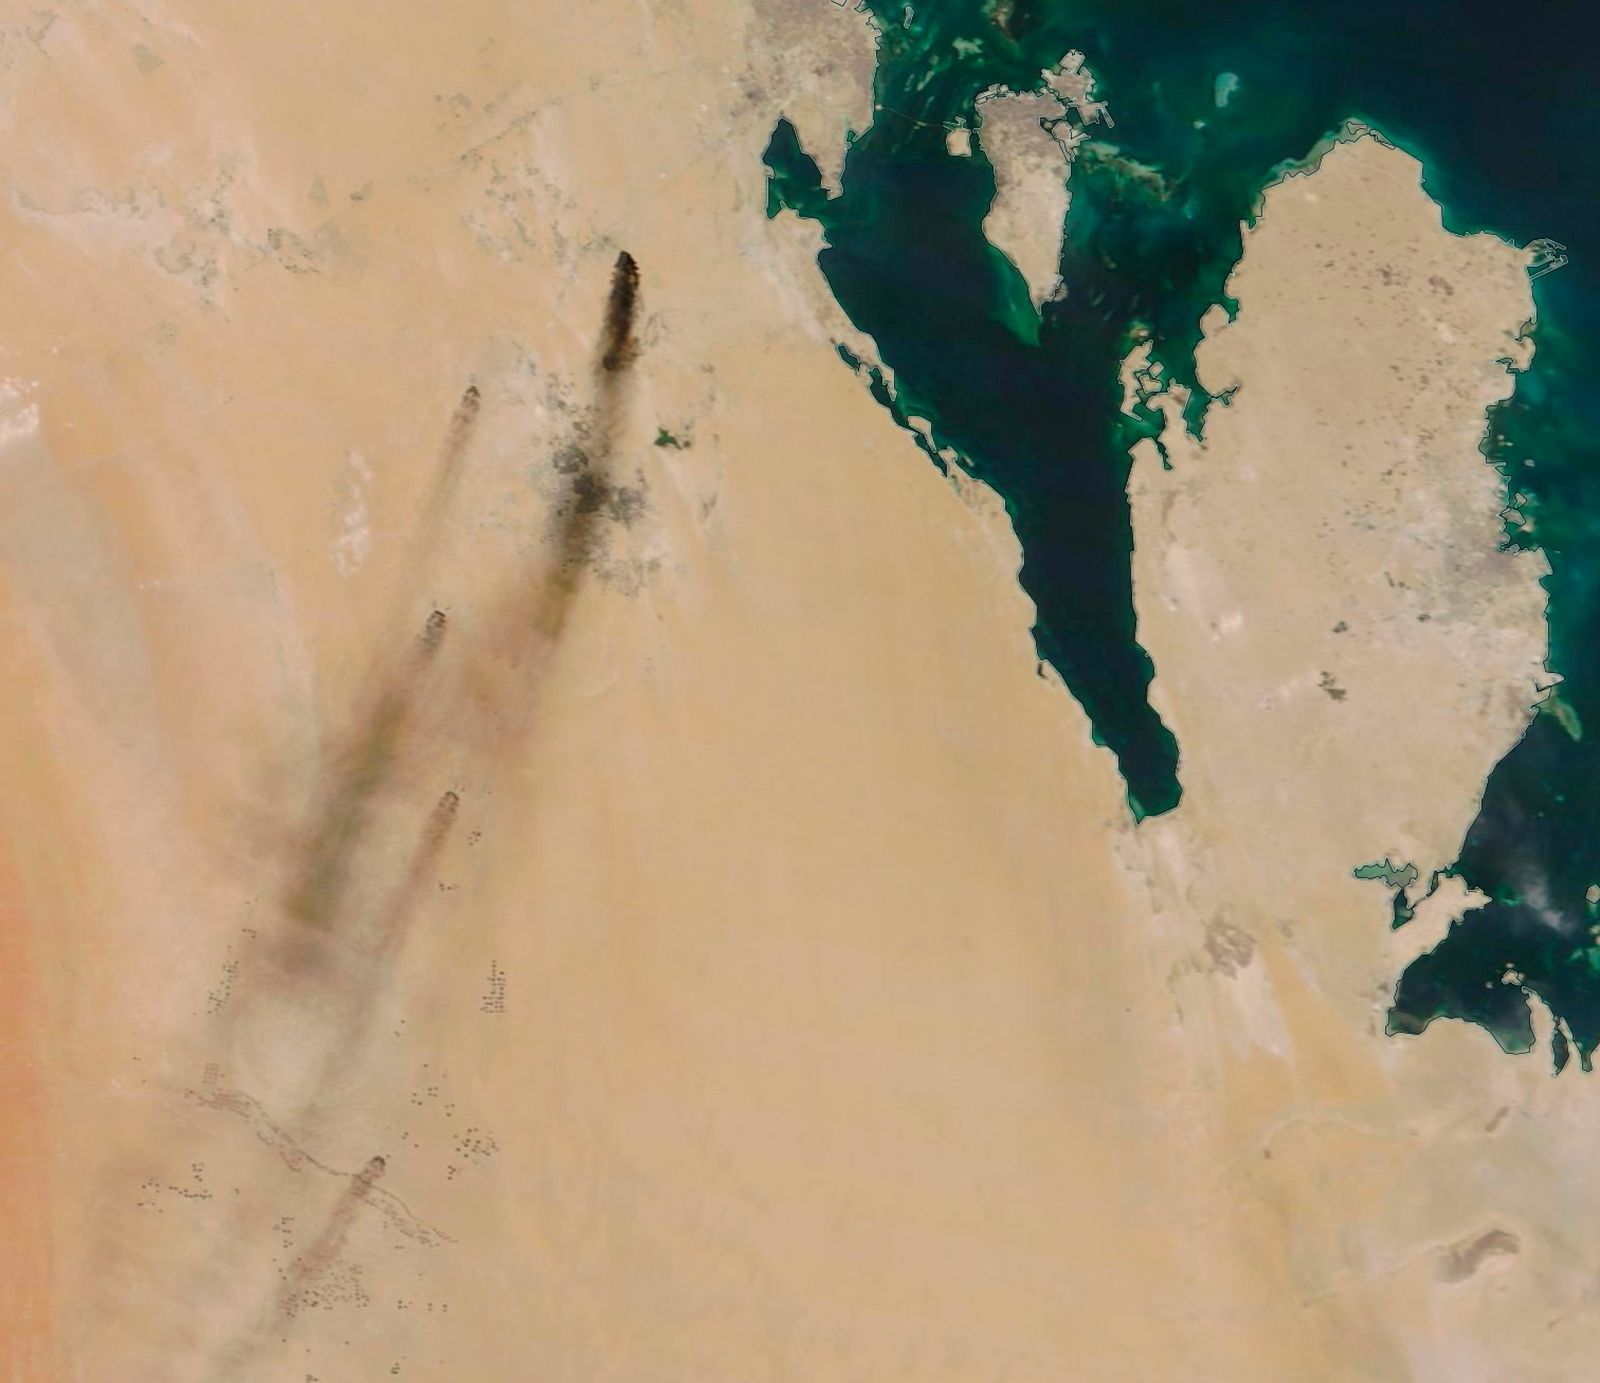 This Saturday, Sept. 14, 2019, satellite image provided by NASA Worldview shows fires following Yemen's Houthi rebels claiming a drone attack on two major oil installations in eastern Saudi Arabia. The drones attacked the world's largest oil processing facility in Saudi Arabia and a major oilfield operated by Saudi Aramco early Saturday, sparking a huge fire at a processor crucial to global energy supplies. The island shown in the image is Bahrain, while the peninsula in the image is Qatar. (NASA Worldview via AP)